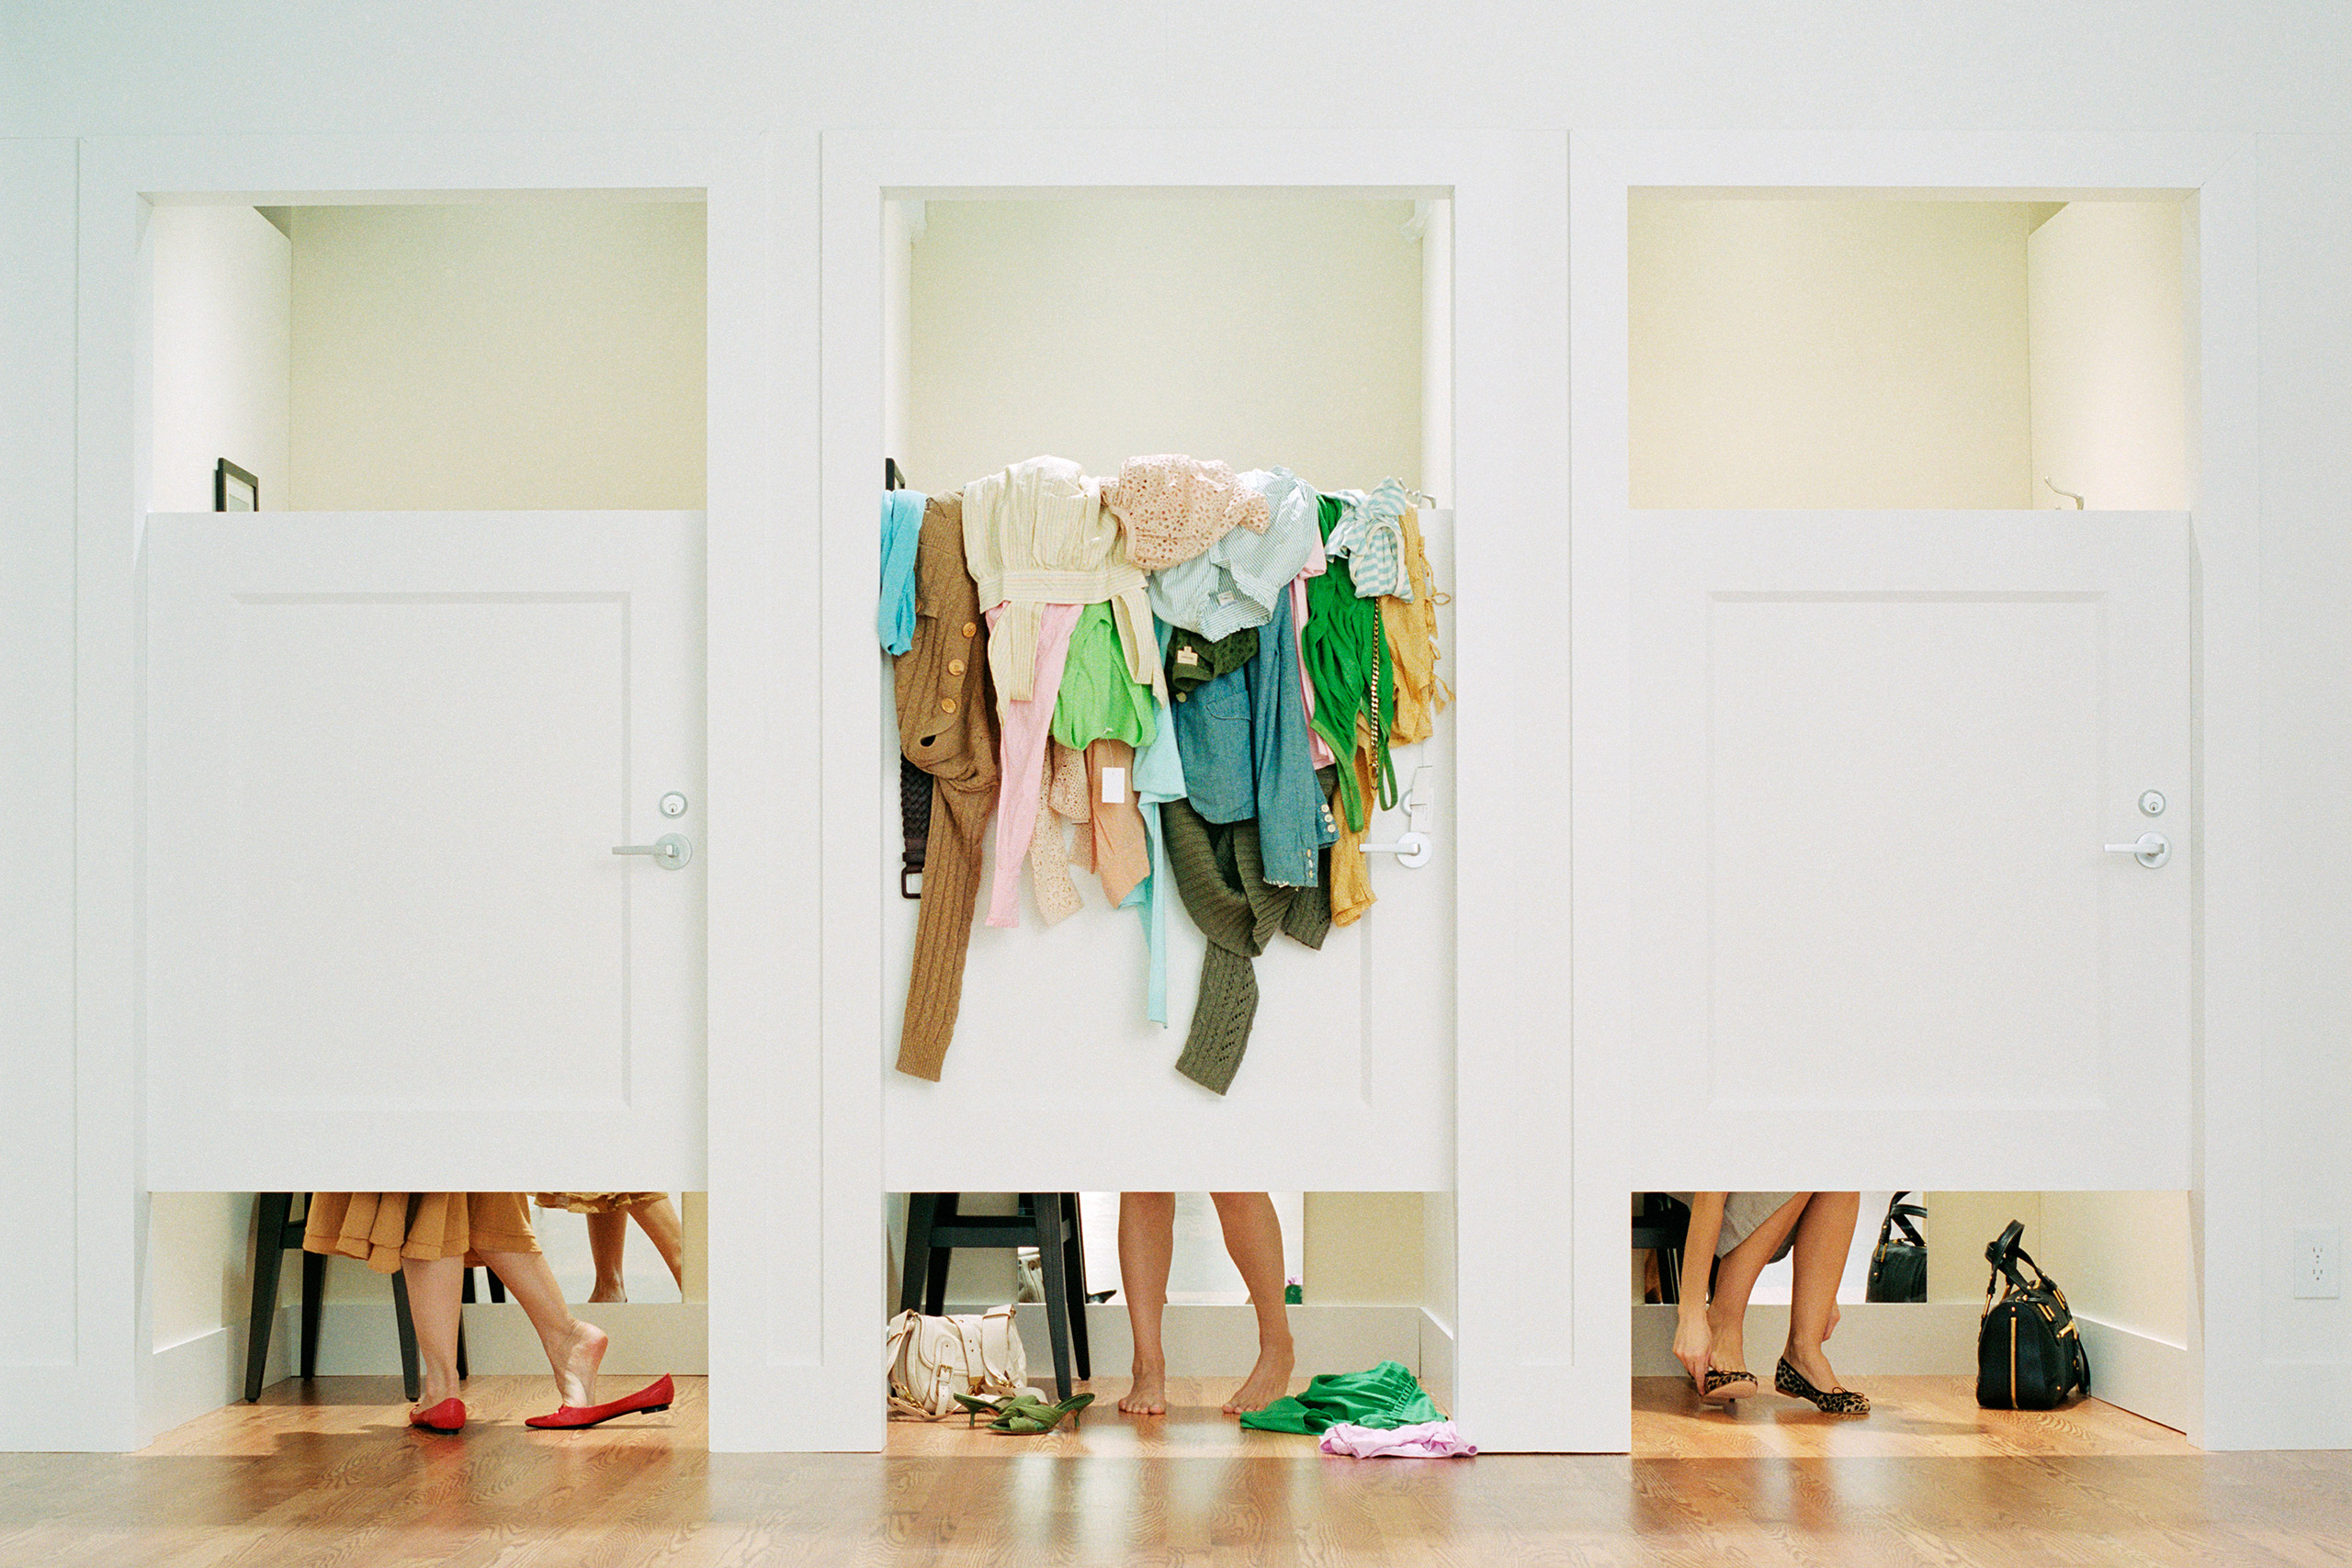 Clothing Sizes How Vanity Sizing Made Shopping Impossible